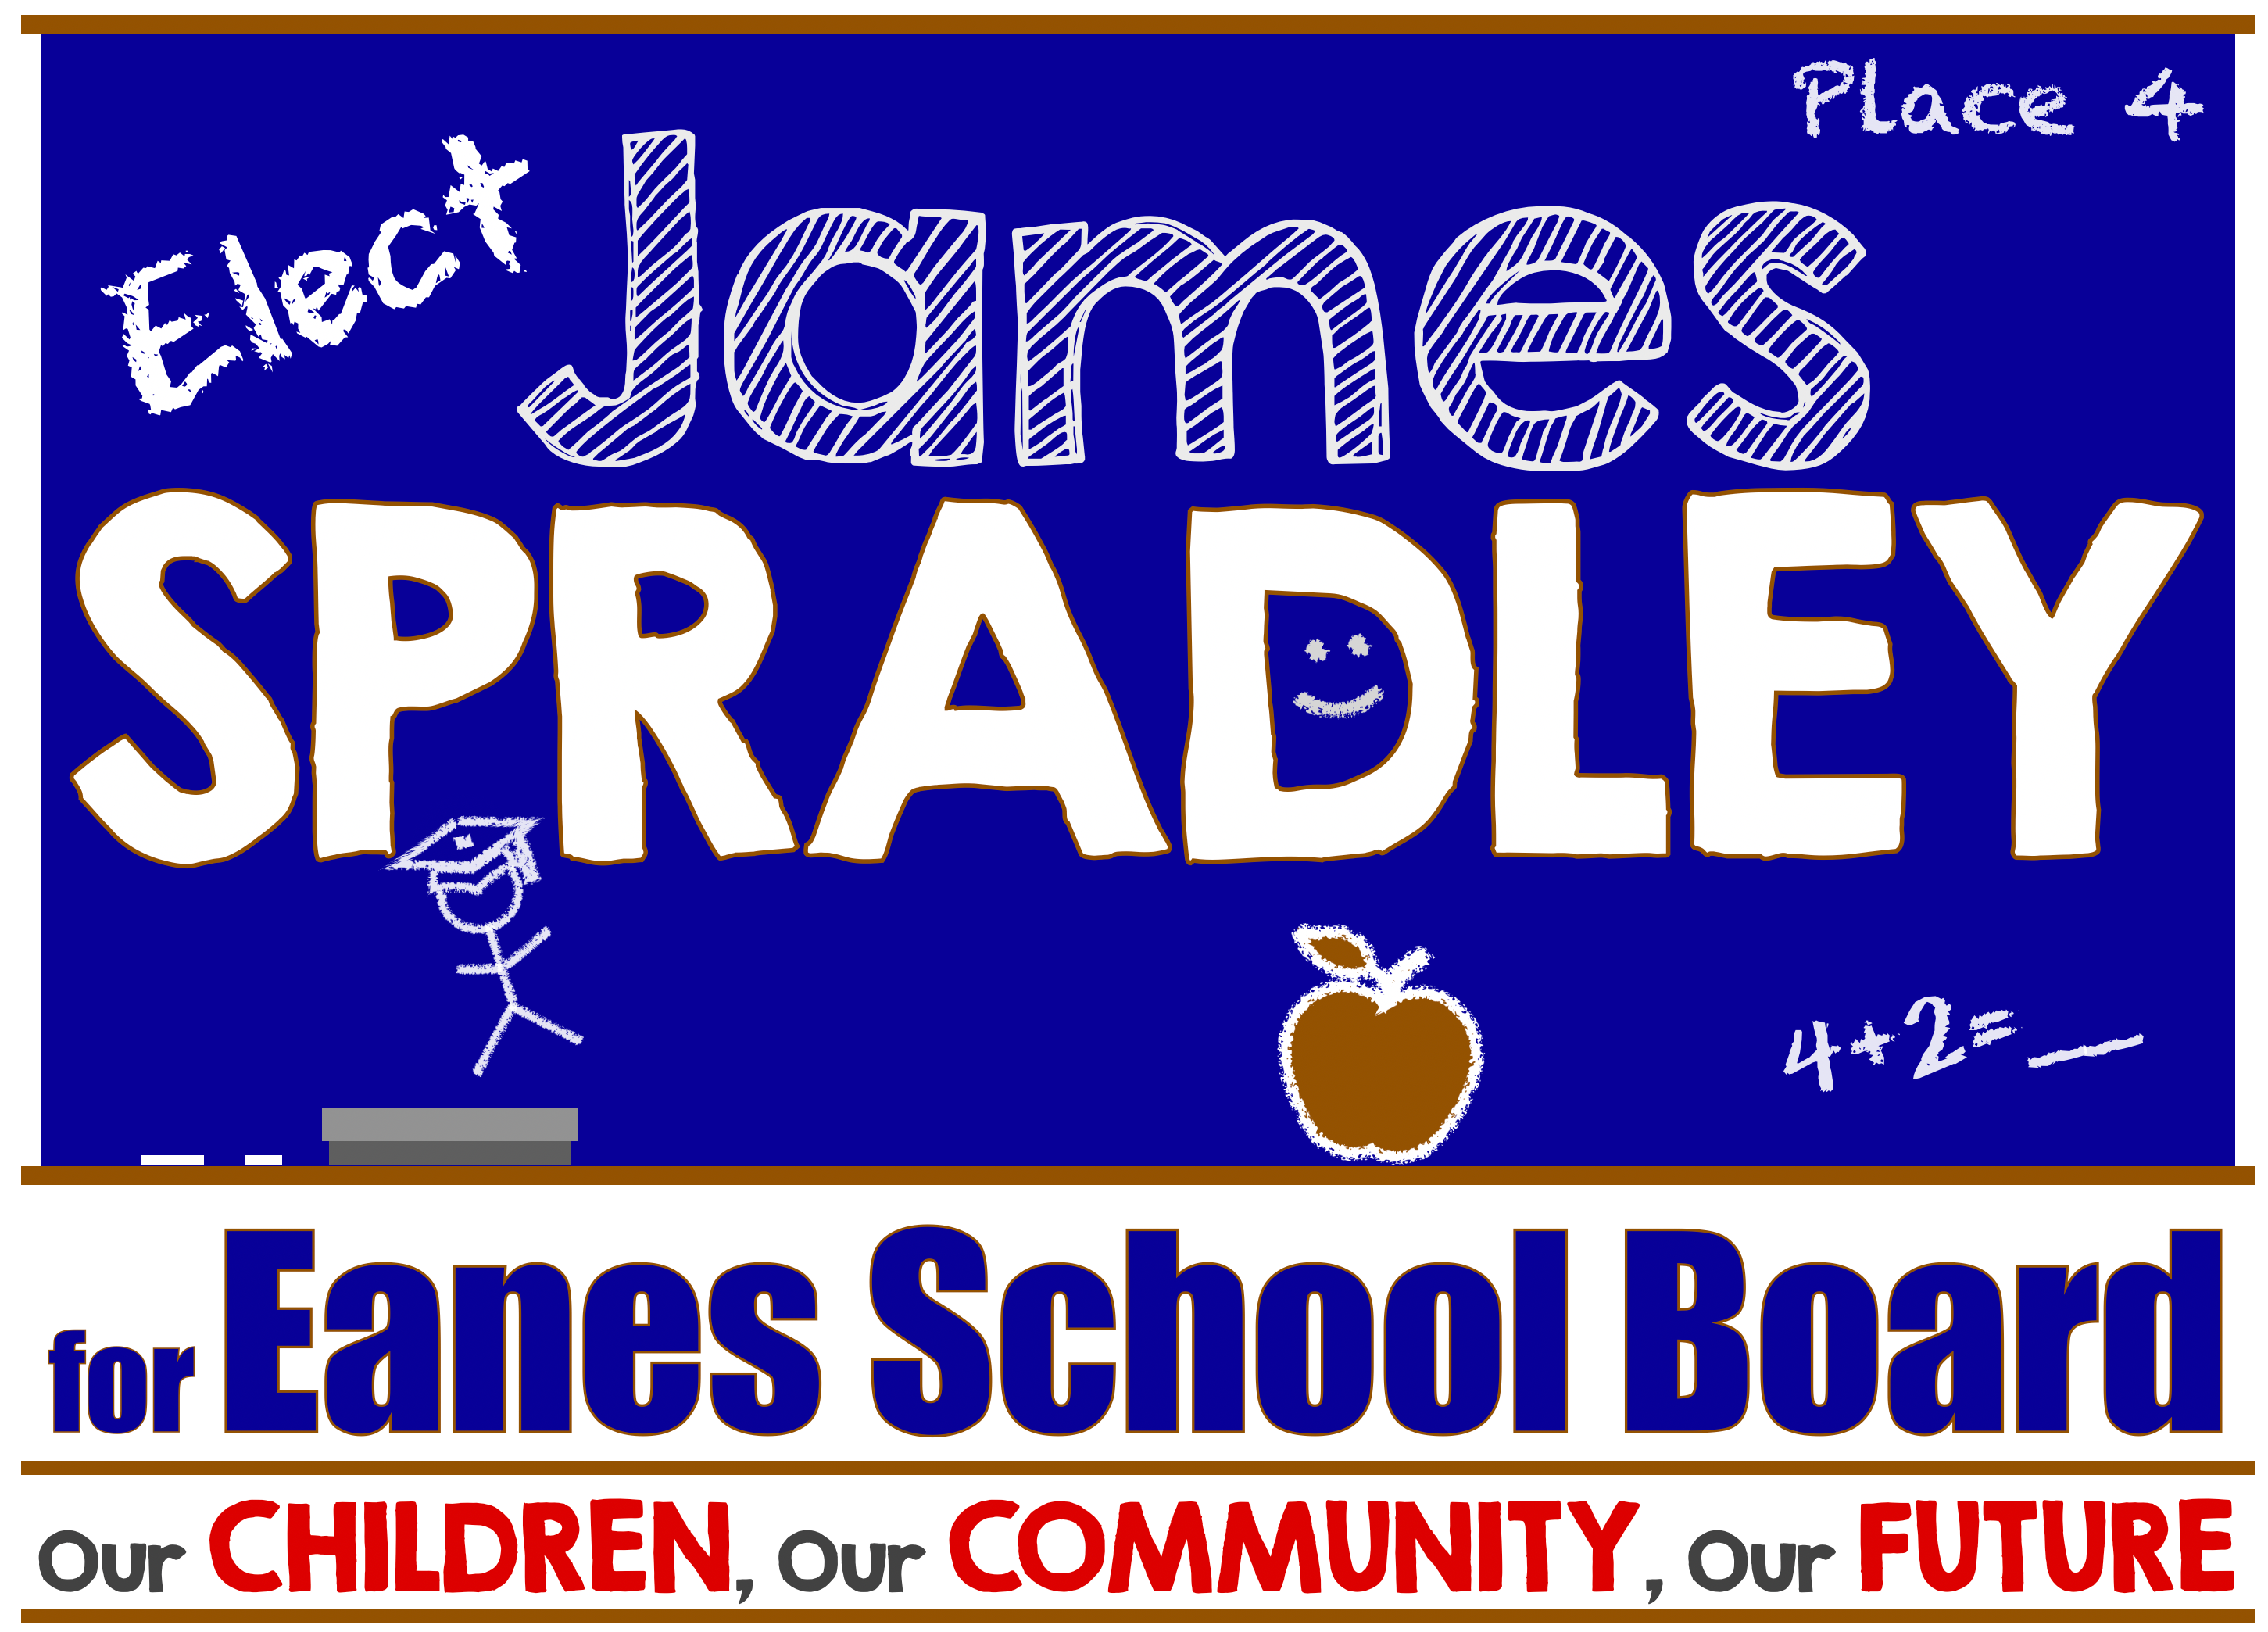 Home | James for Eanes